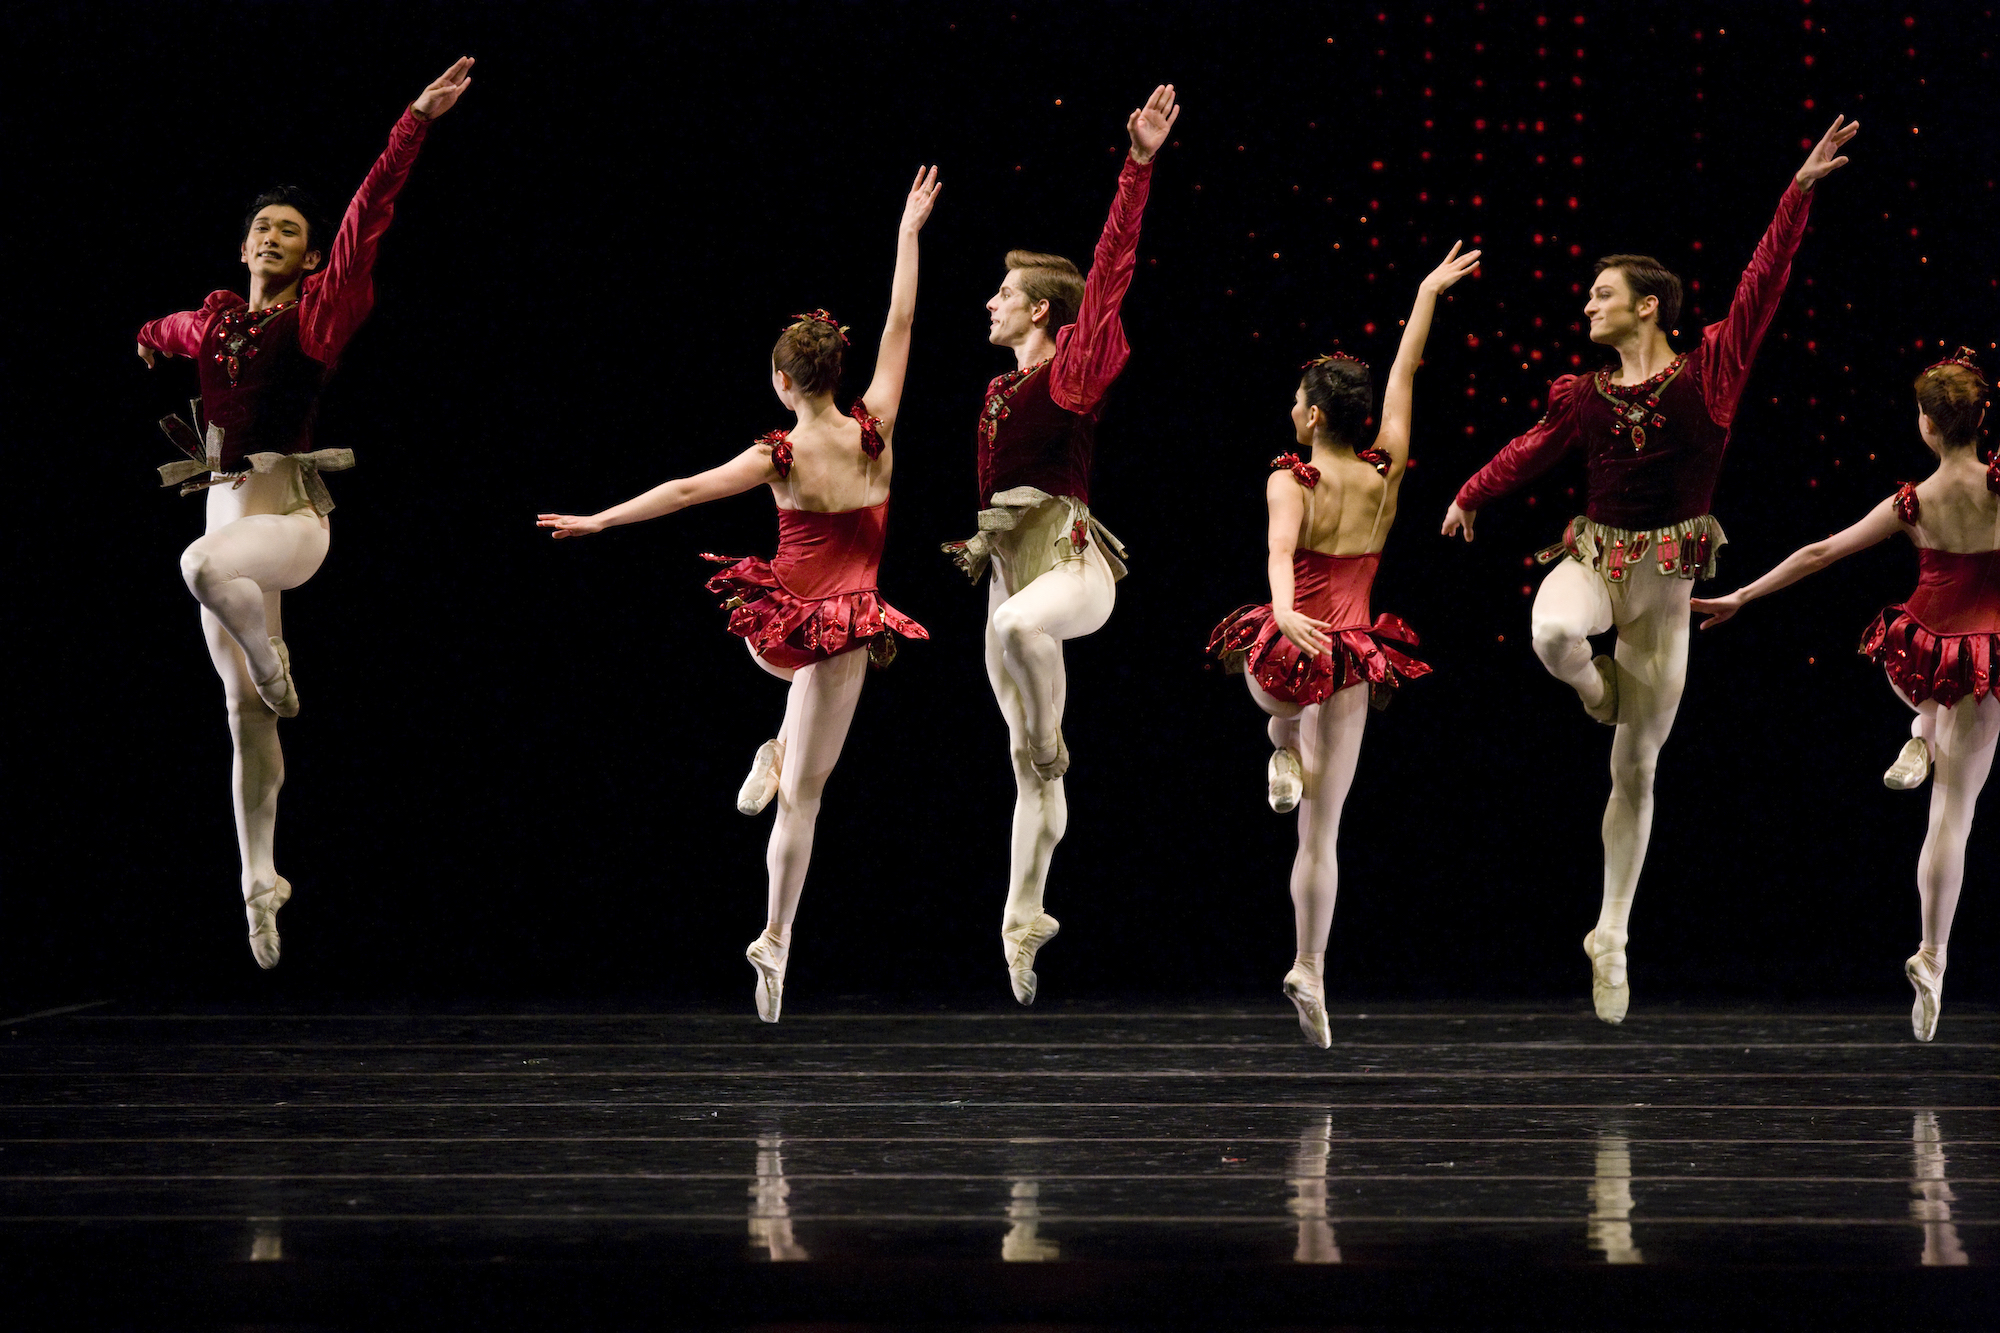 San Francisco Ballet in Balanchine's Rubies. (Choreography by George Balanchine © The Balanchine Trust; Photo © Erik Tomasson)